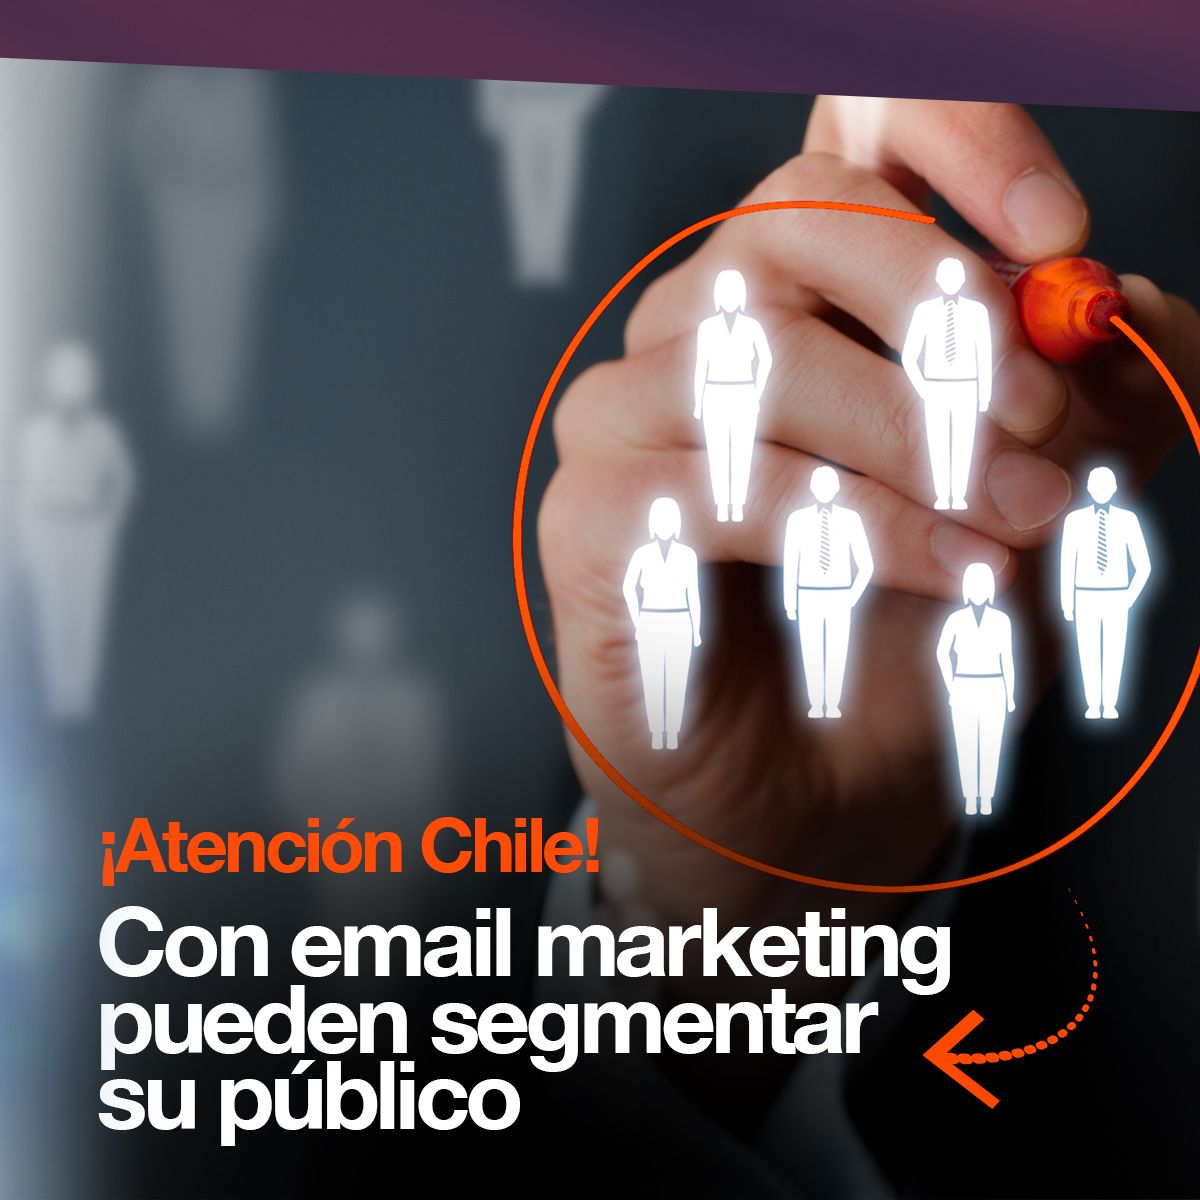 ¡Atención Chile! Con email marketing pueden segmentar su público